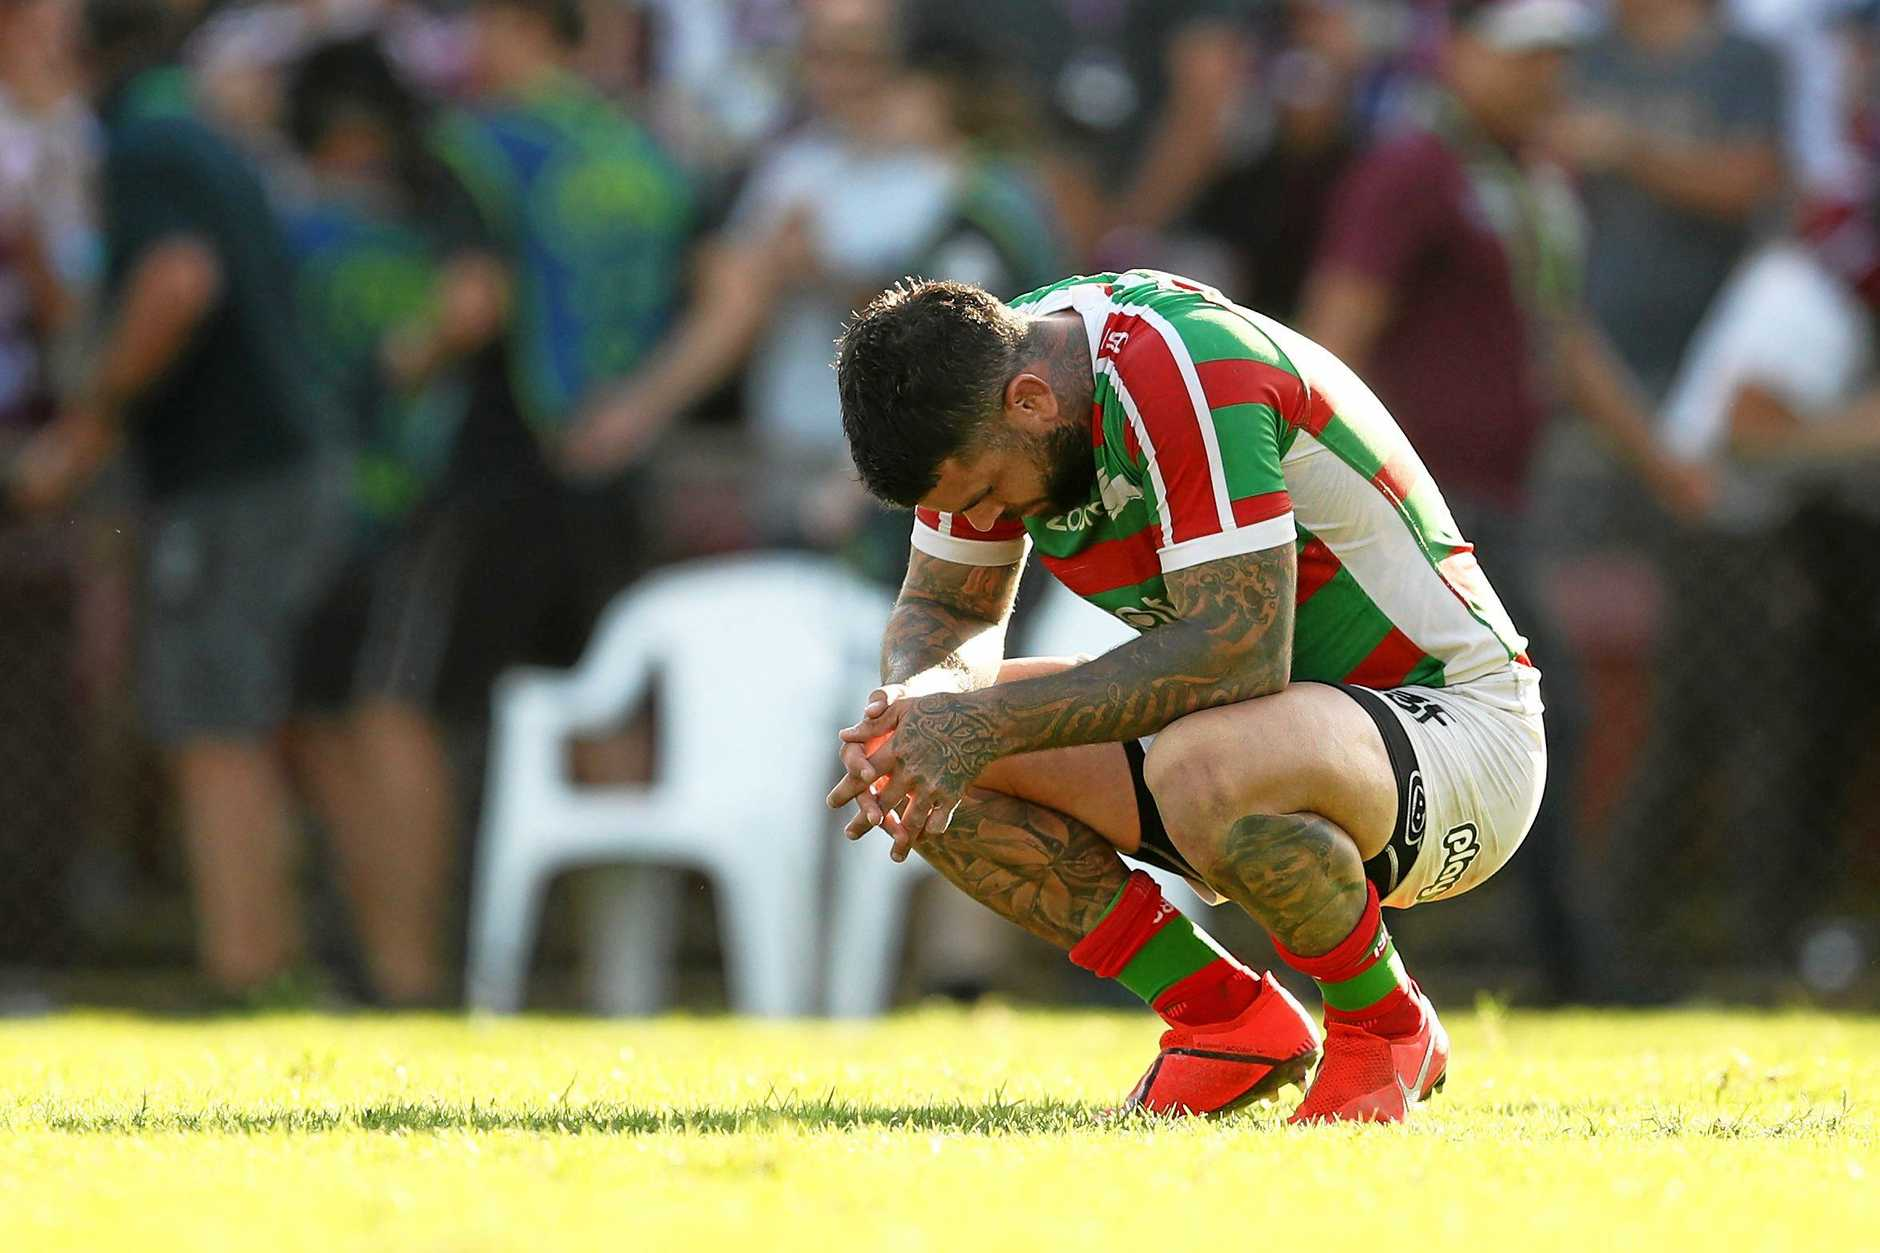 Adam Reynolds of the Rabbitohs reacts during the Round 4 NRL match between the Manly Sea Eagles and South Sydney Rabbitohs at Lottoland in Sydney, Saturday, April 6, 2019. (AAP Image/Brendon Thorne) NO ARCHIVING, EDITORIAL USE ONLY